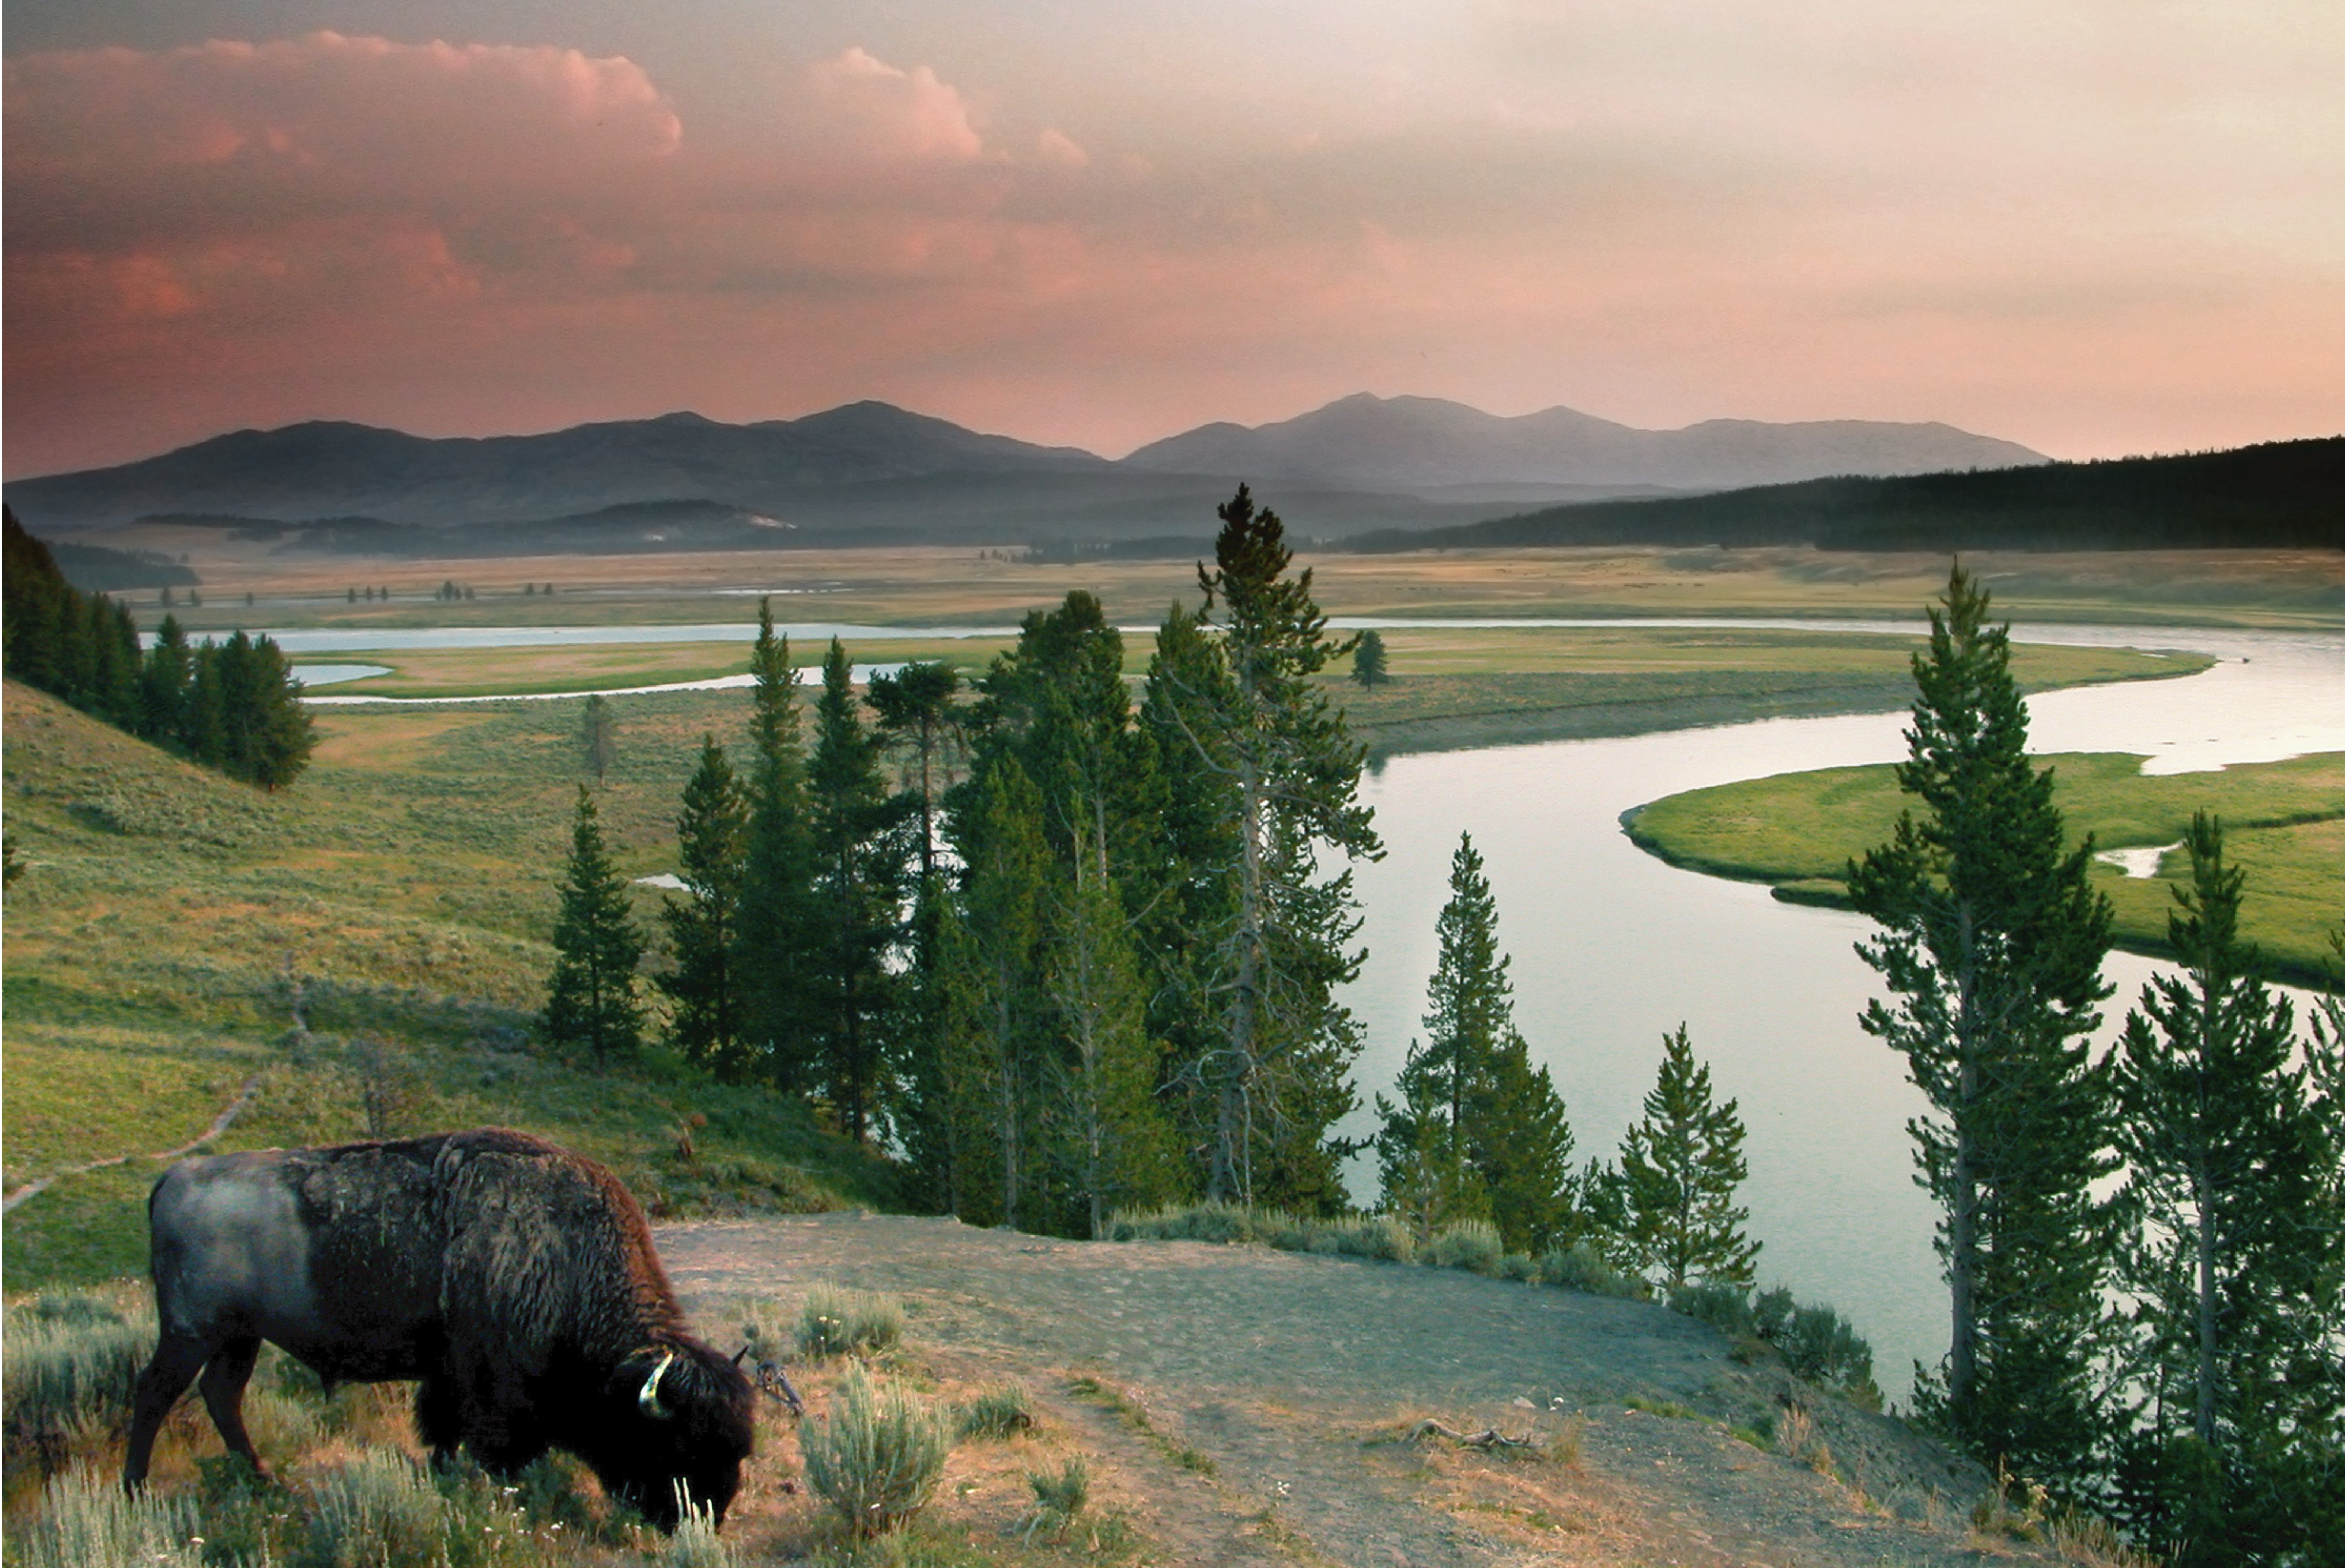 a bison feeding near the yellowstone river